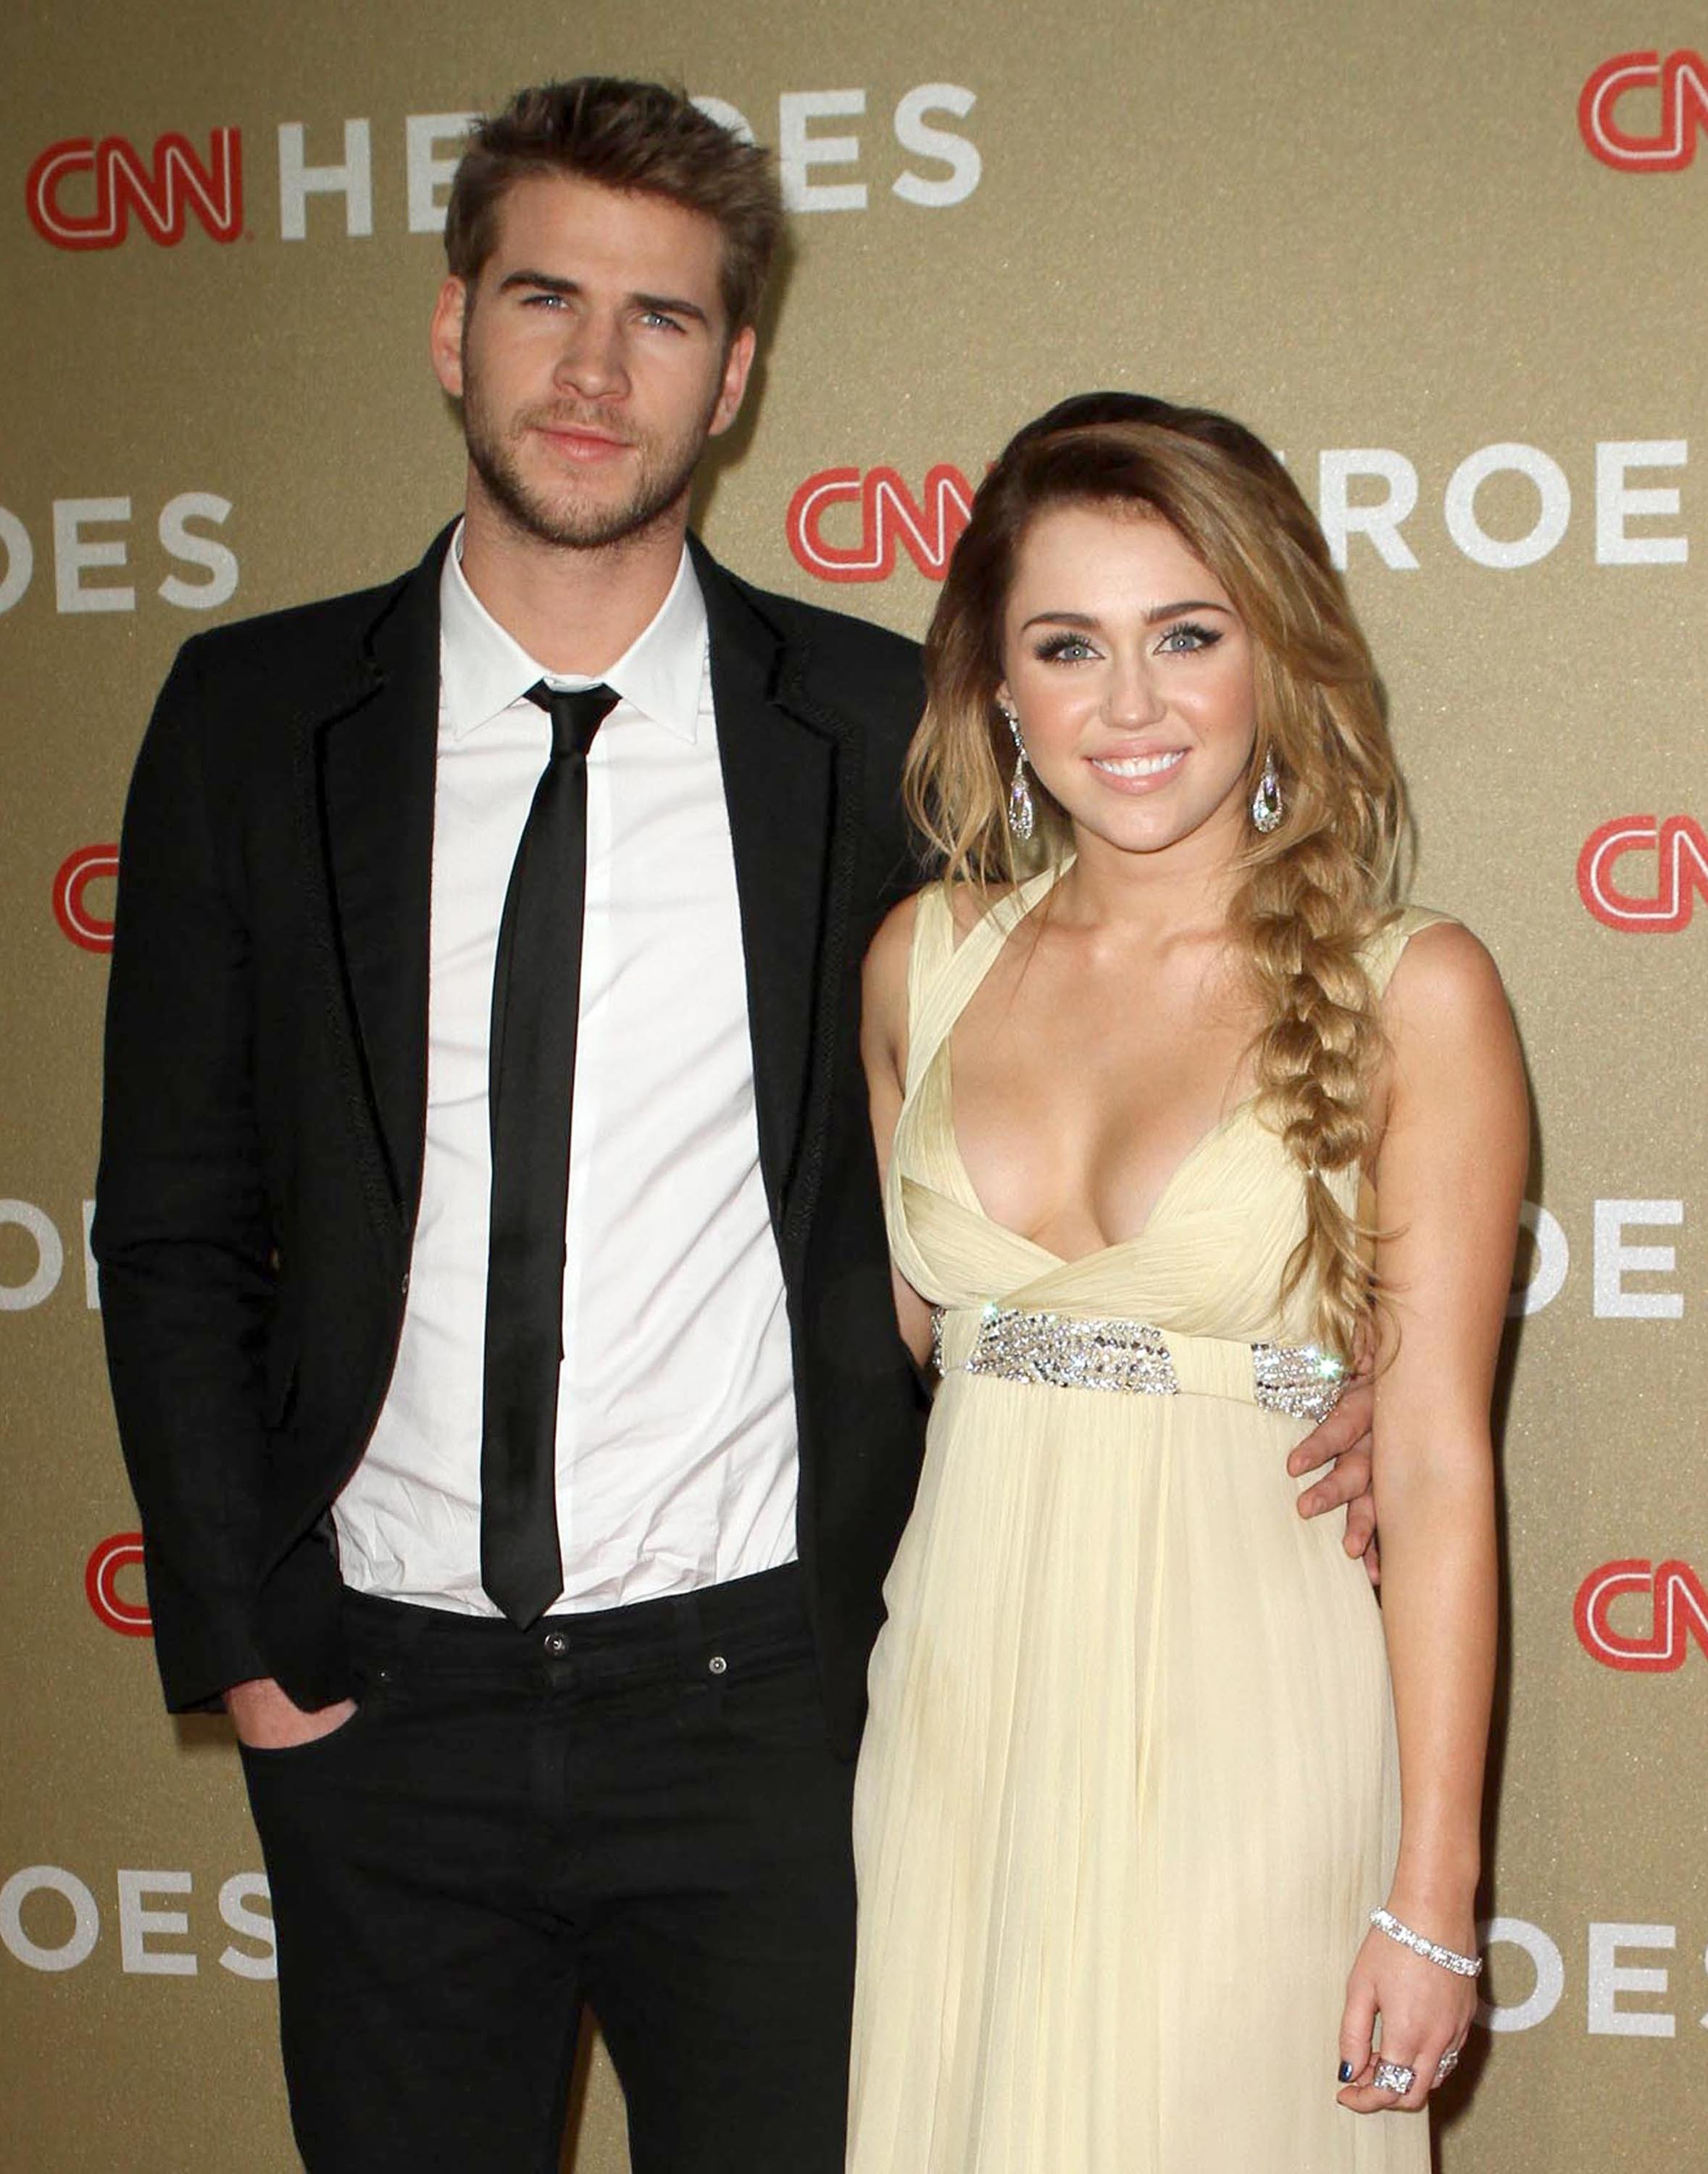 42be80293 Miley Cyrus announced her engagement to actor Liam Hemsworth today, but we  all know what we're really thinking is: What does the ring look like?